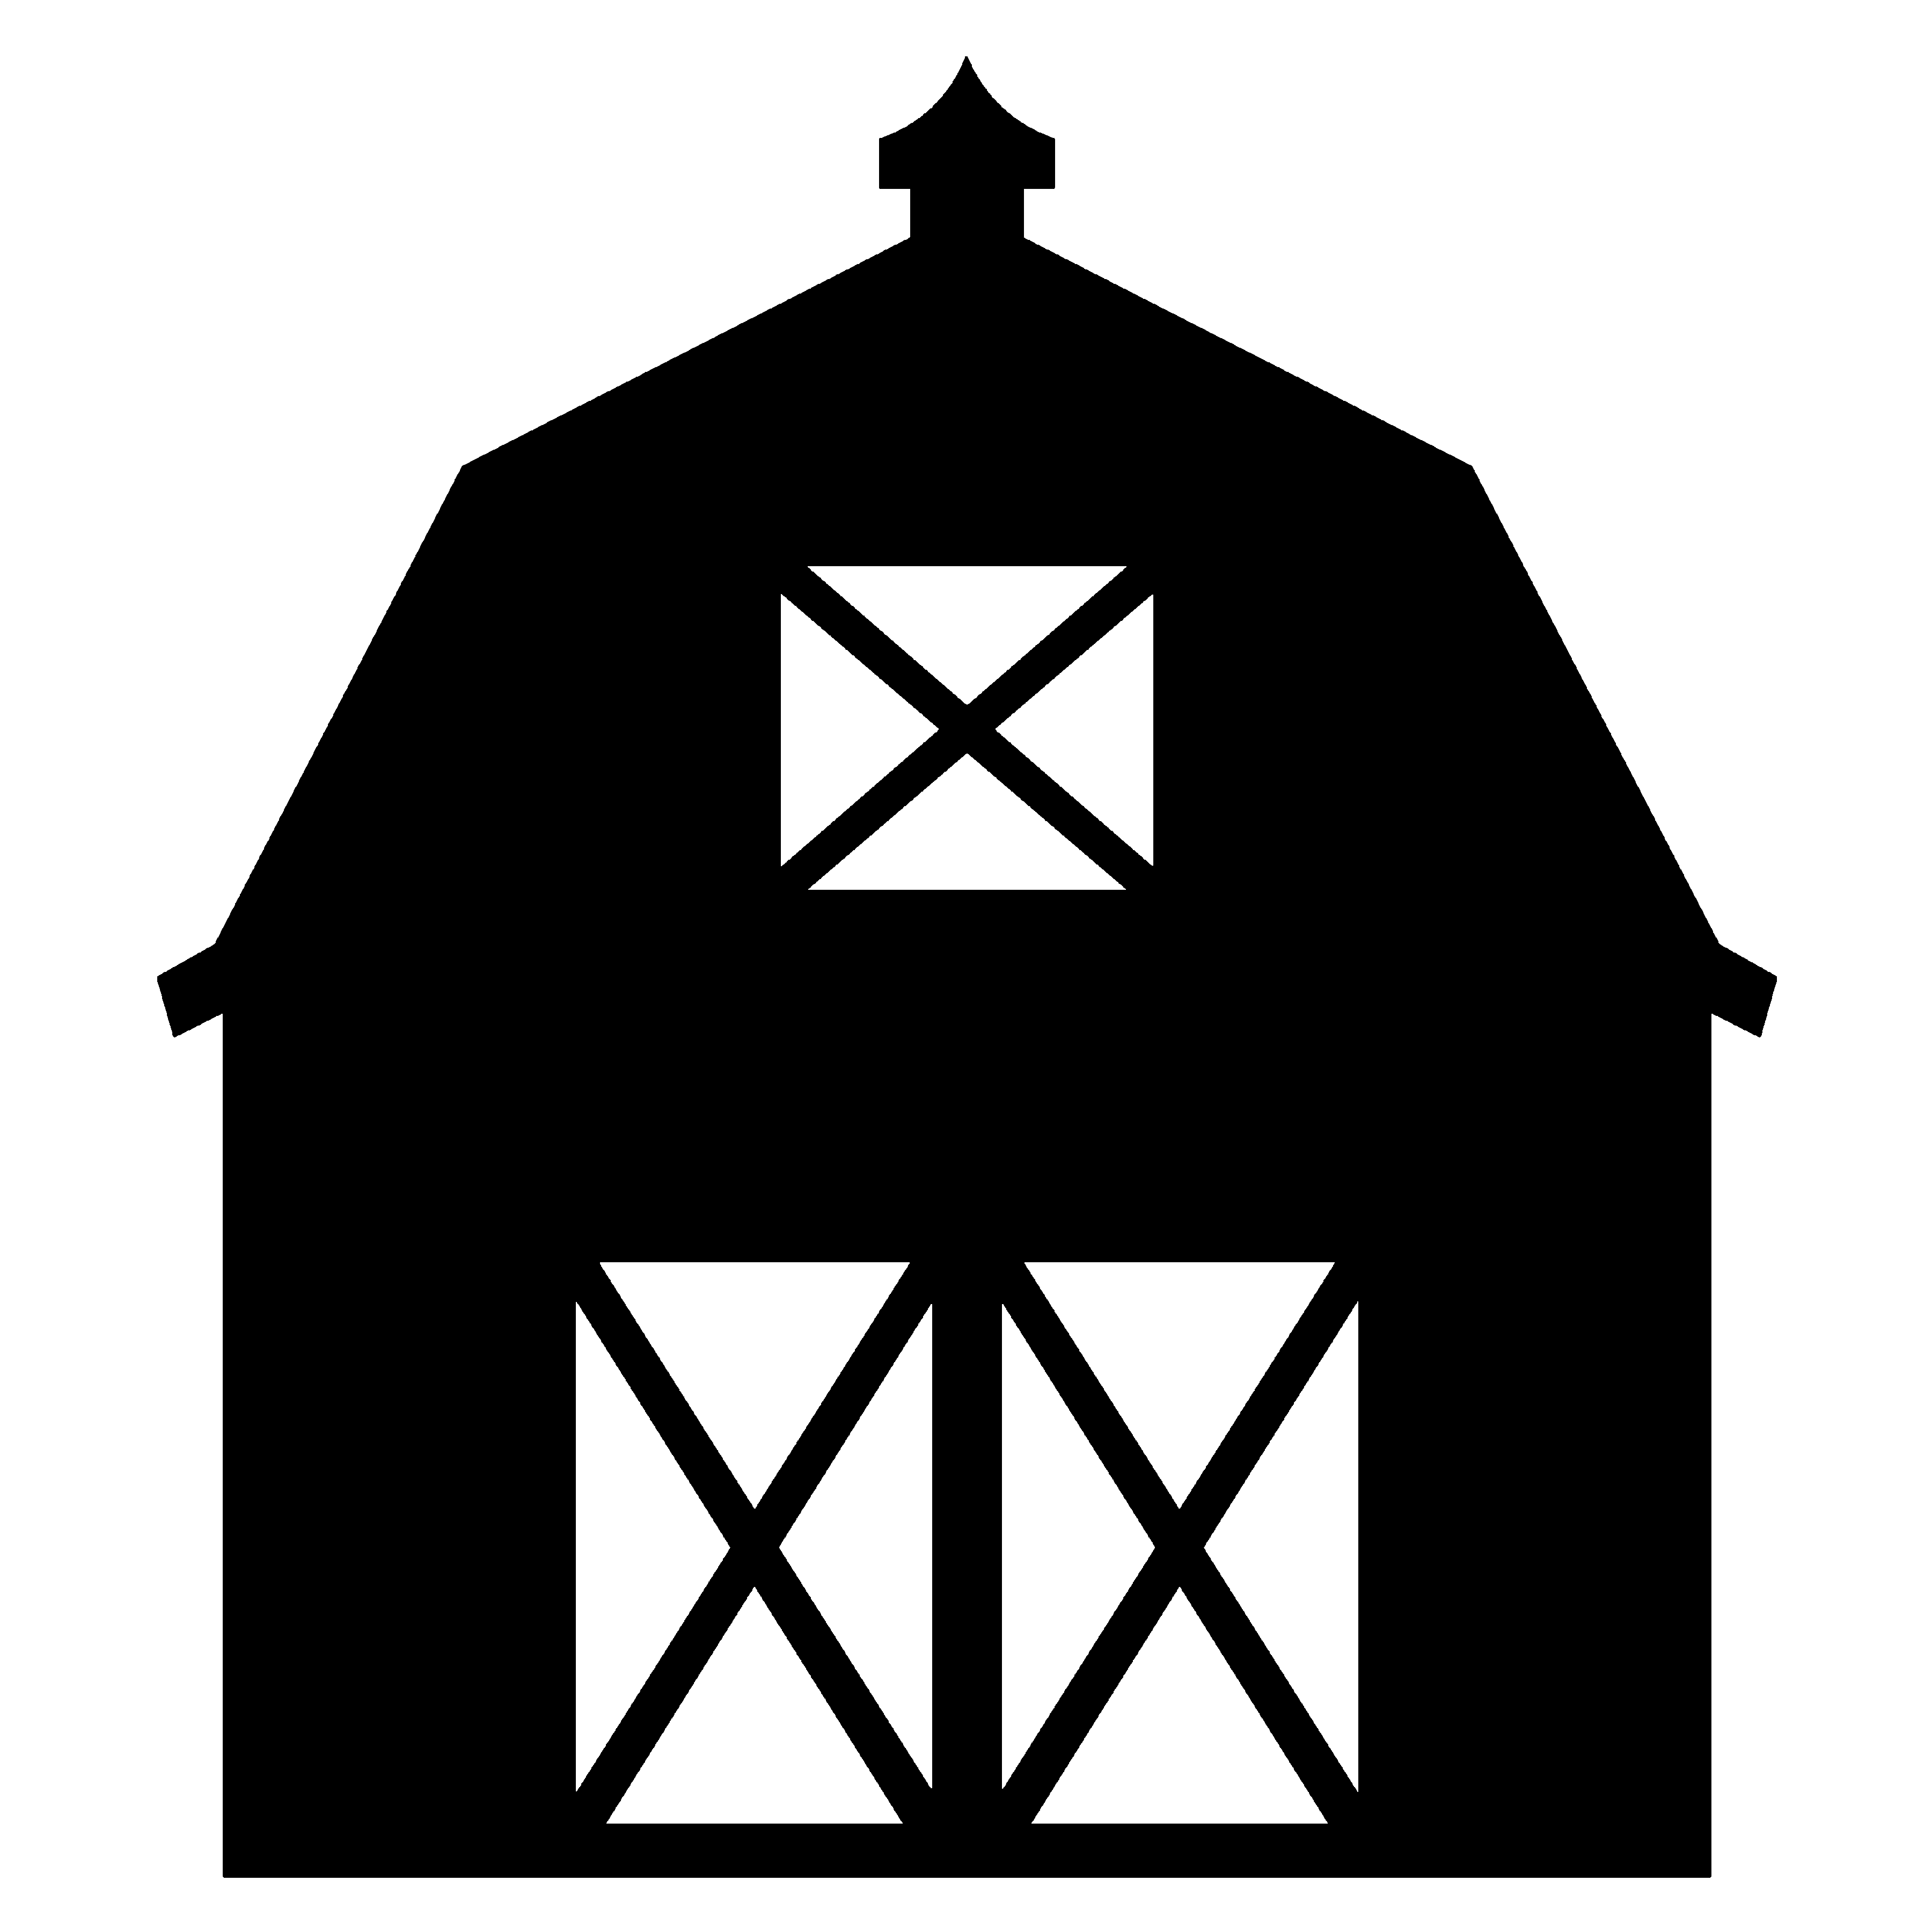 Barn clipart simple. Barns free download best